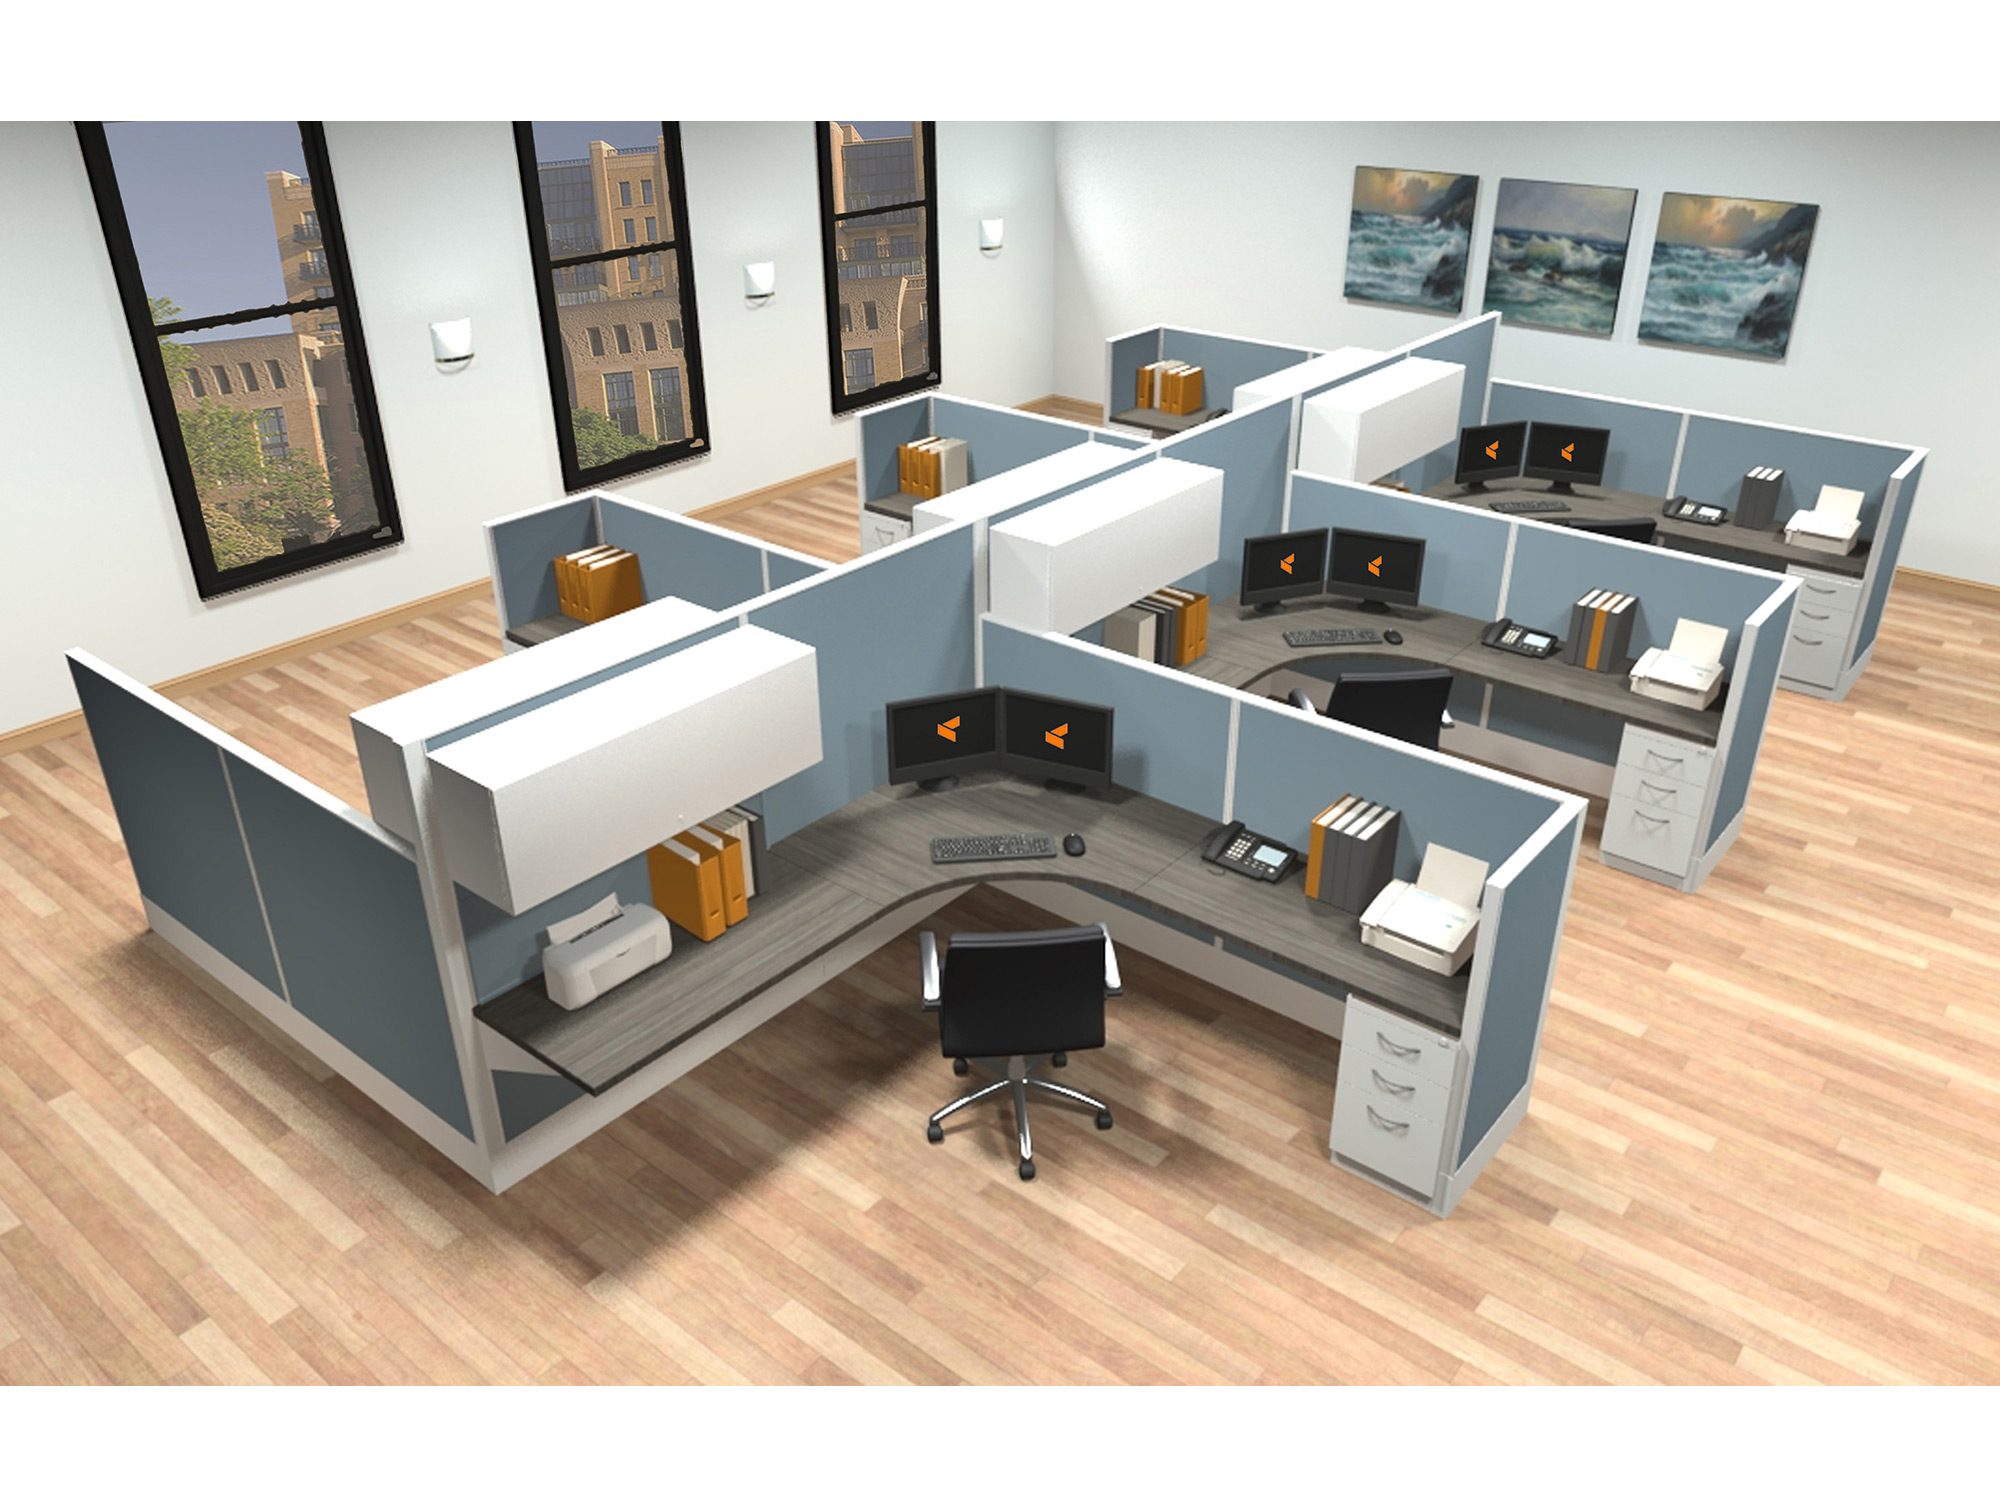 8x8 modular workstations from AIS - 6 Pack Cluster